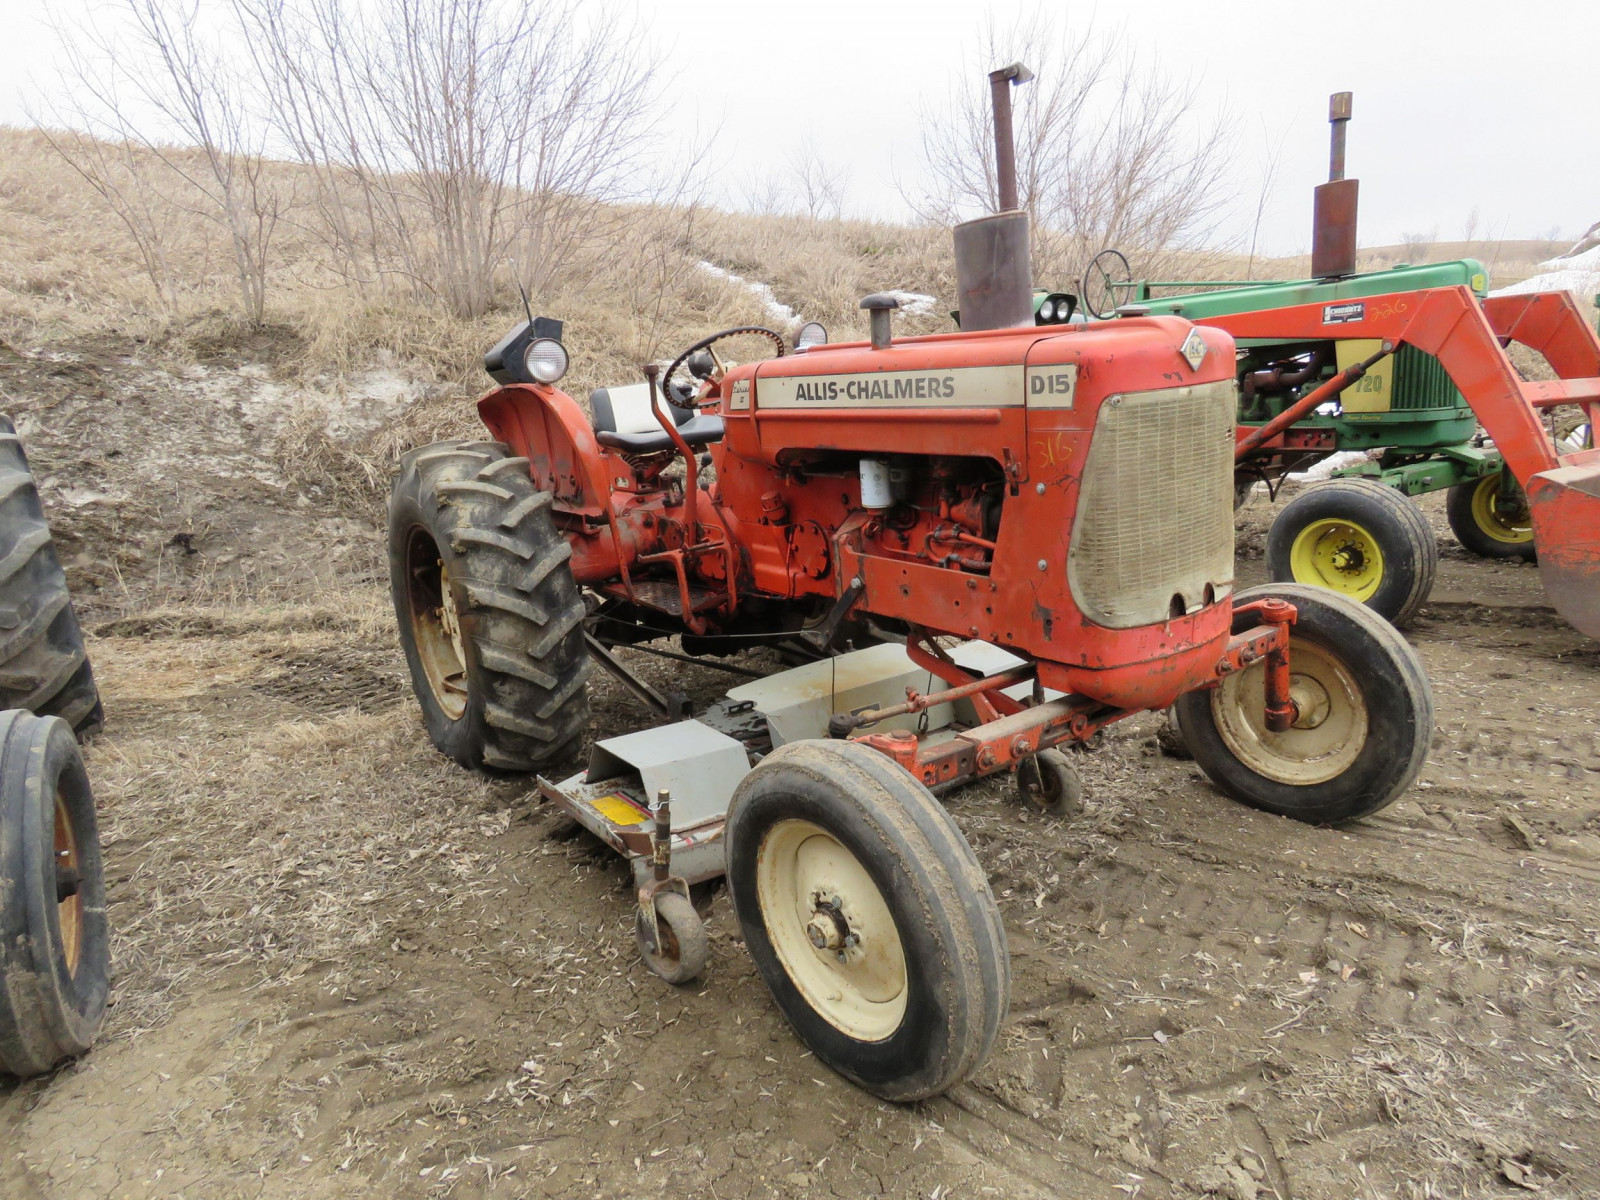 Allis Chalmers D15 with Mower - Image 1